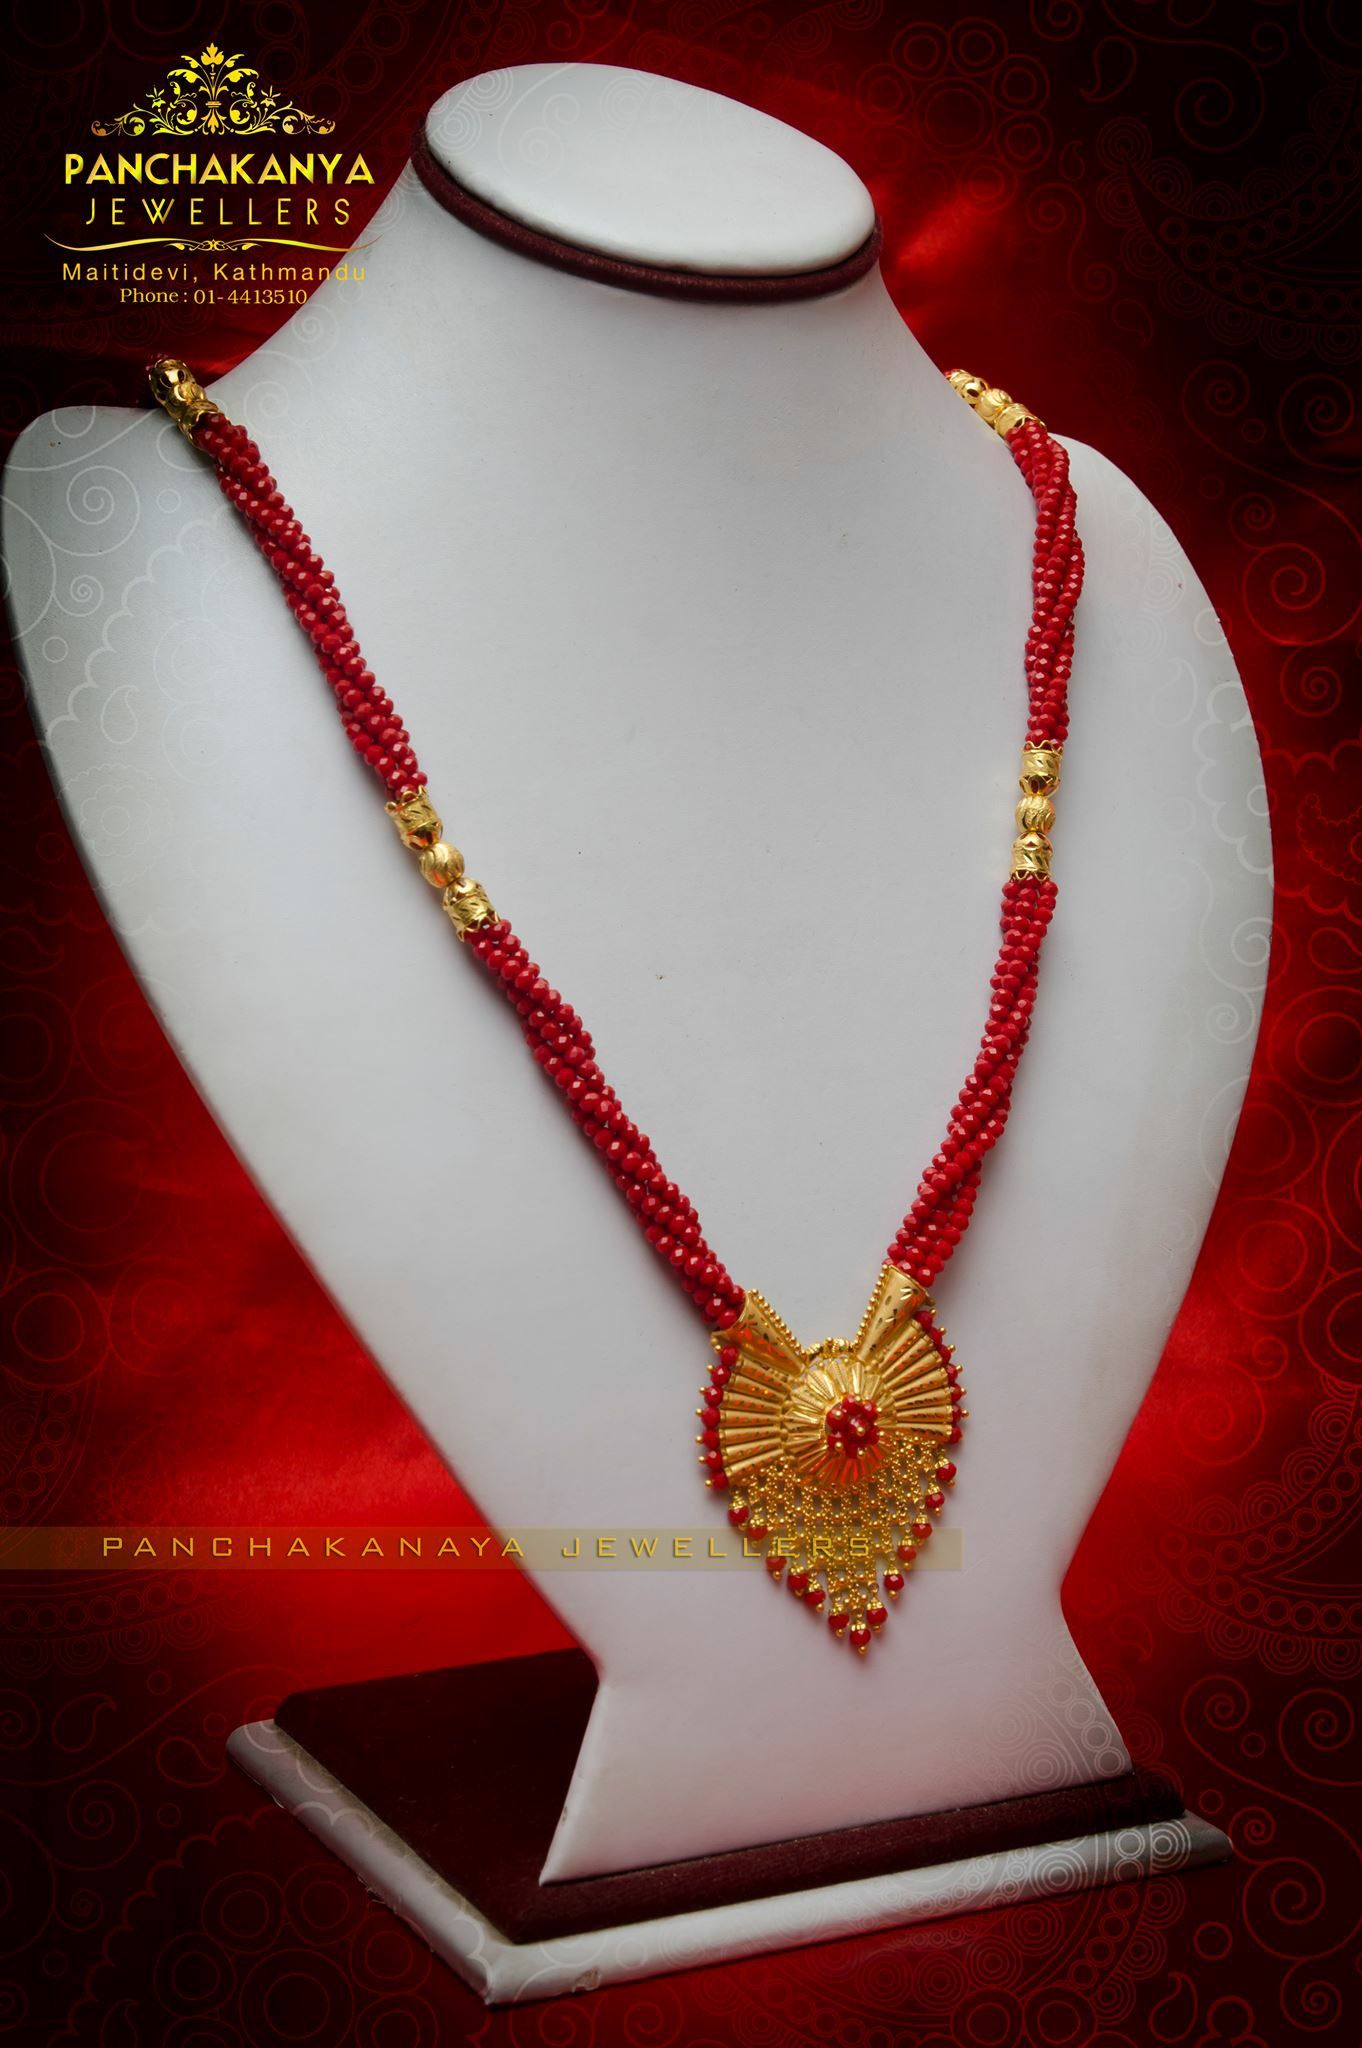 Gold necklace designs with price in rupees jewelry gallery - Gold Jewelry